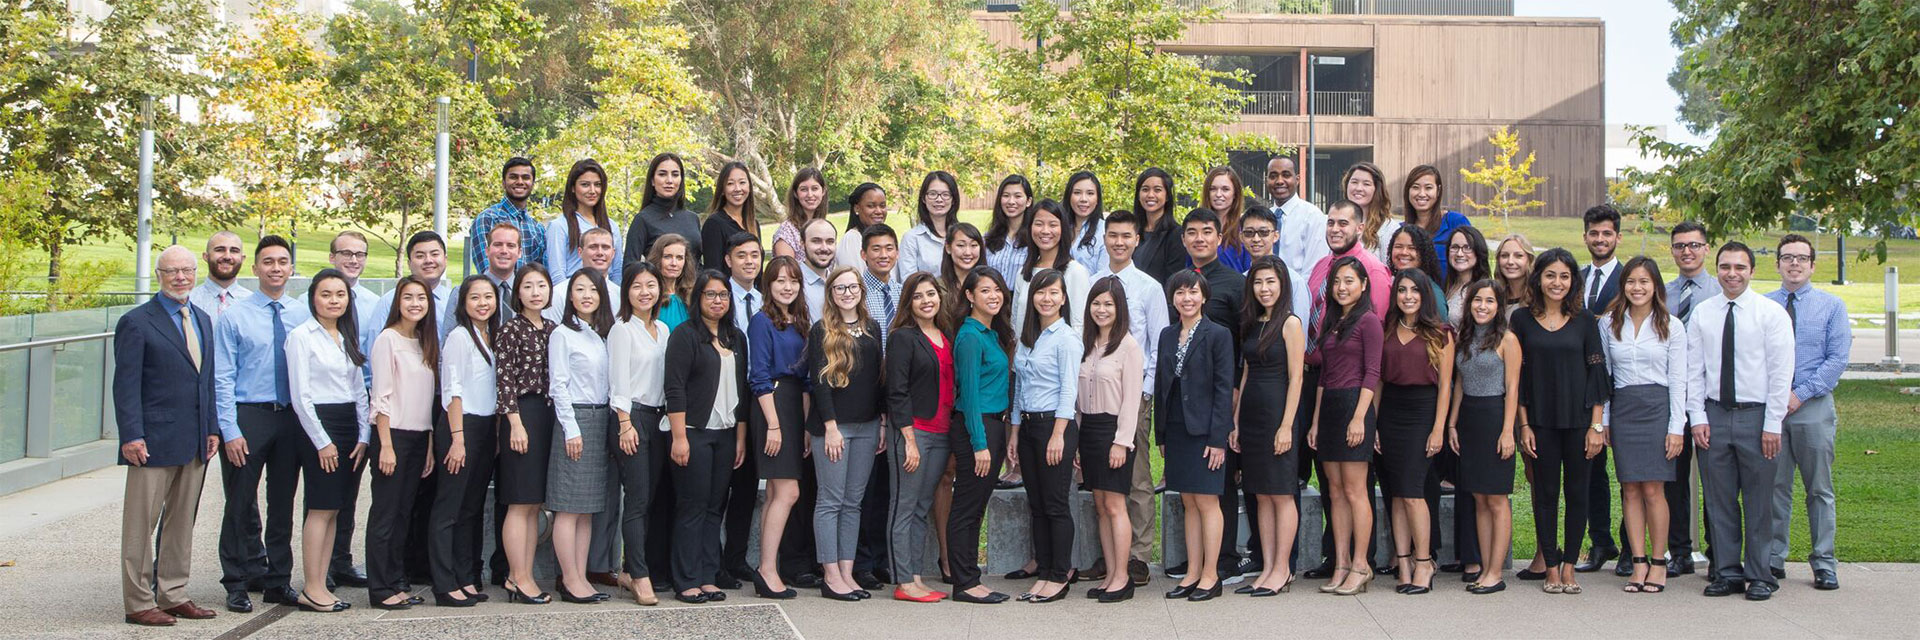 2020 Ucsd Calendar Welcome to Skaggs School of Pharmacy and Pharmaceutical Sciences